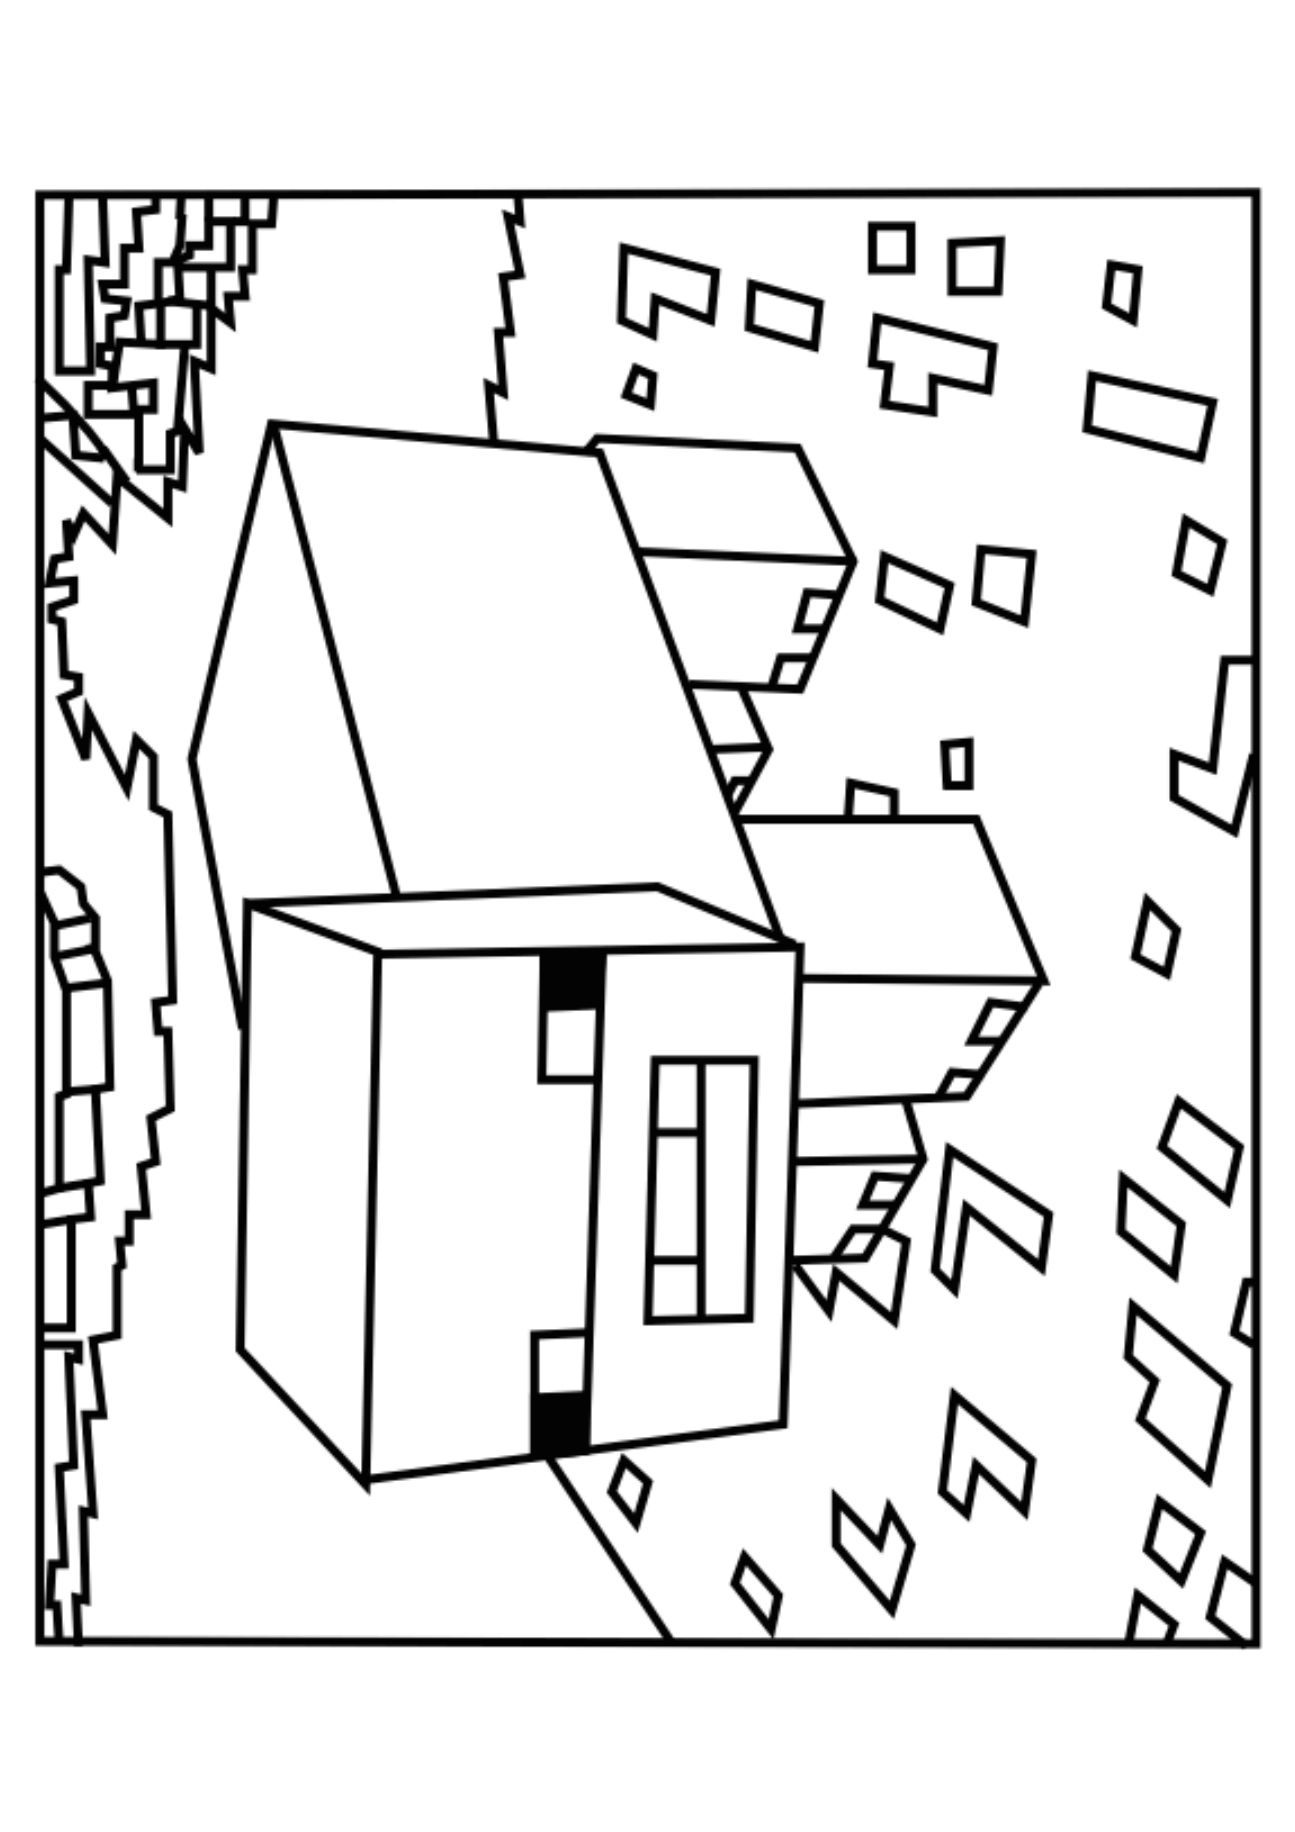 A Minecraft Pig Coloring Page Coloring Pages Coloring Pages To